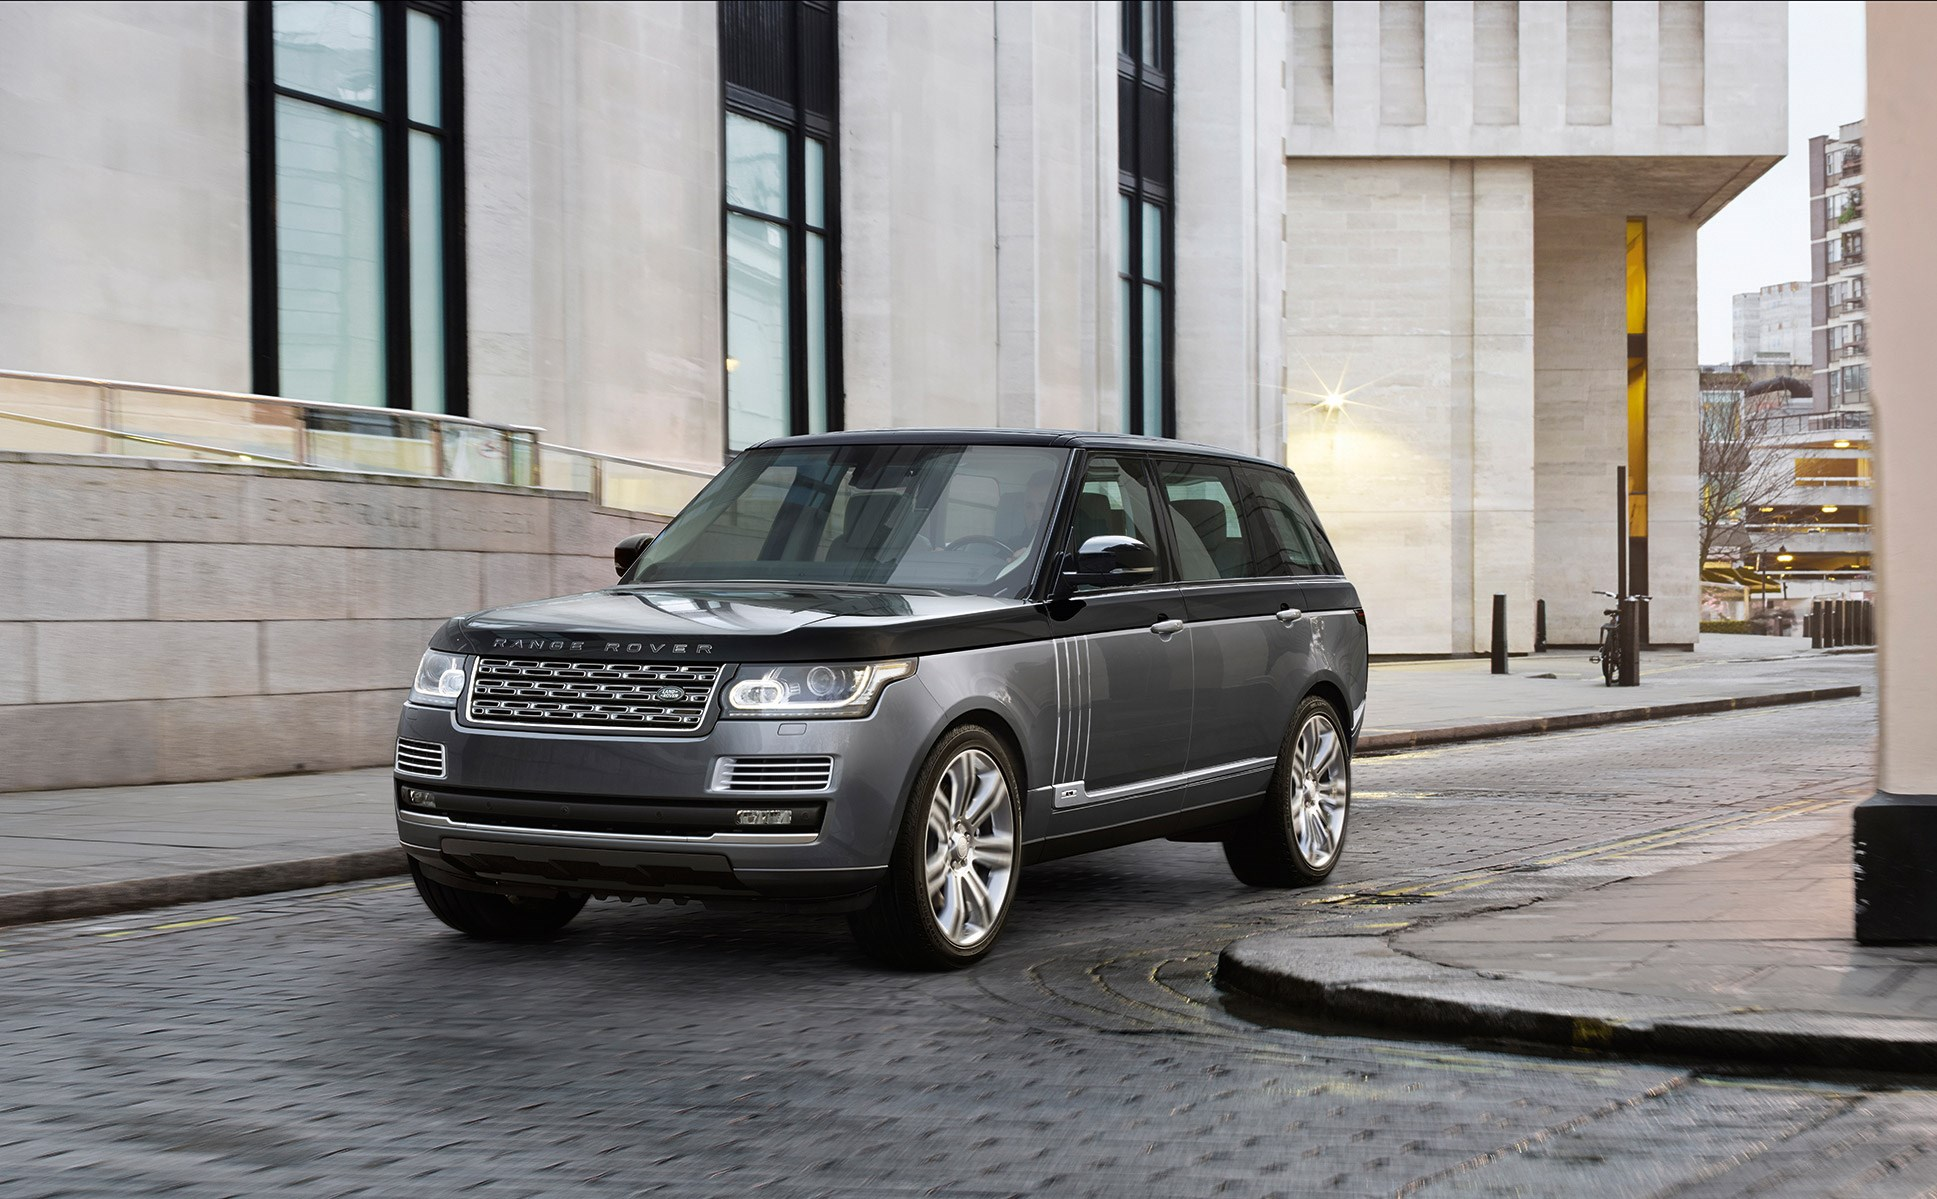 range rover svautobiography meet the 150k rangie by car magazine. Black Bedroom Furniture Sets. Home Design Ideas